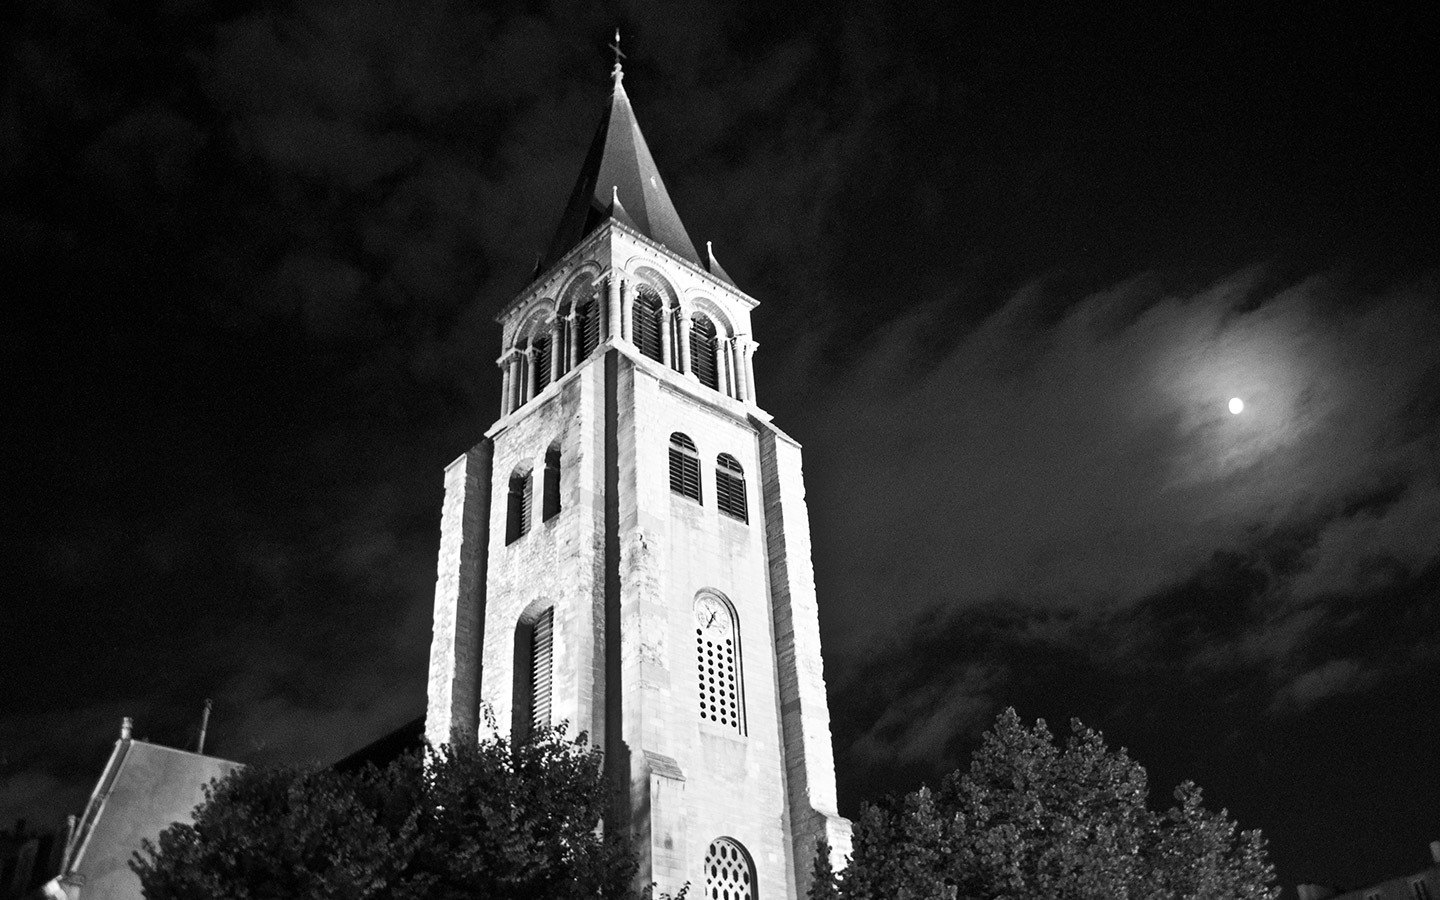 The tower of the Eglise Saint-Germain-des-Prés at night